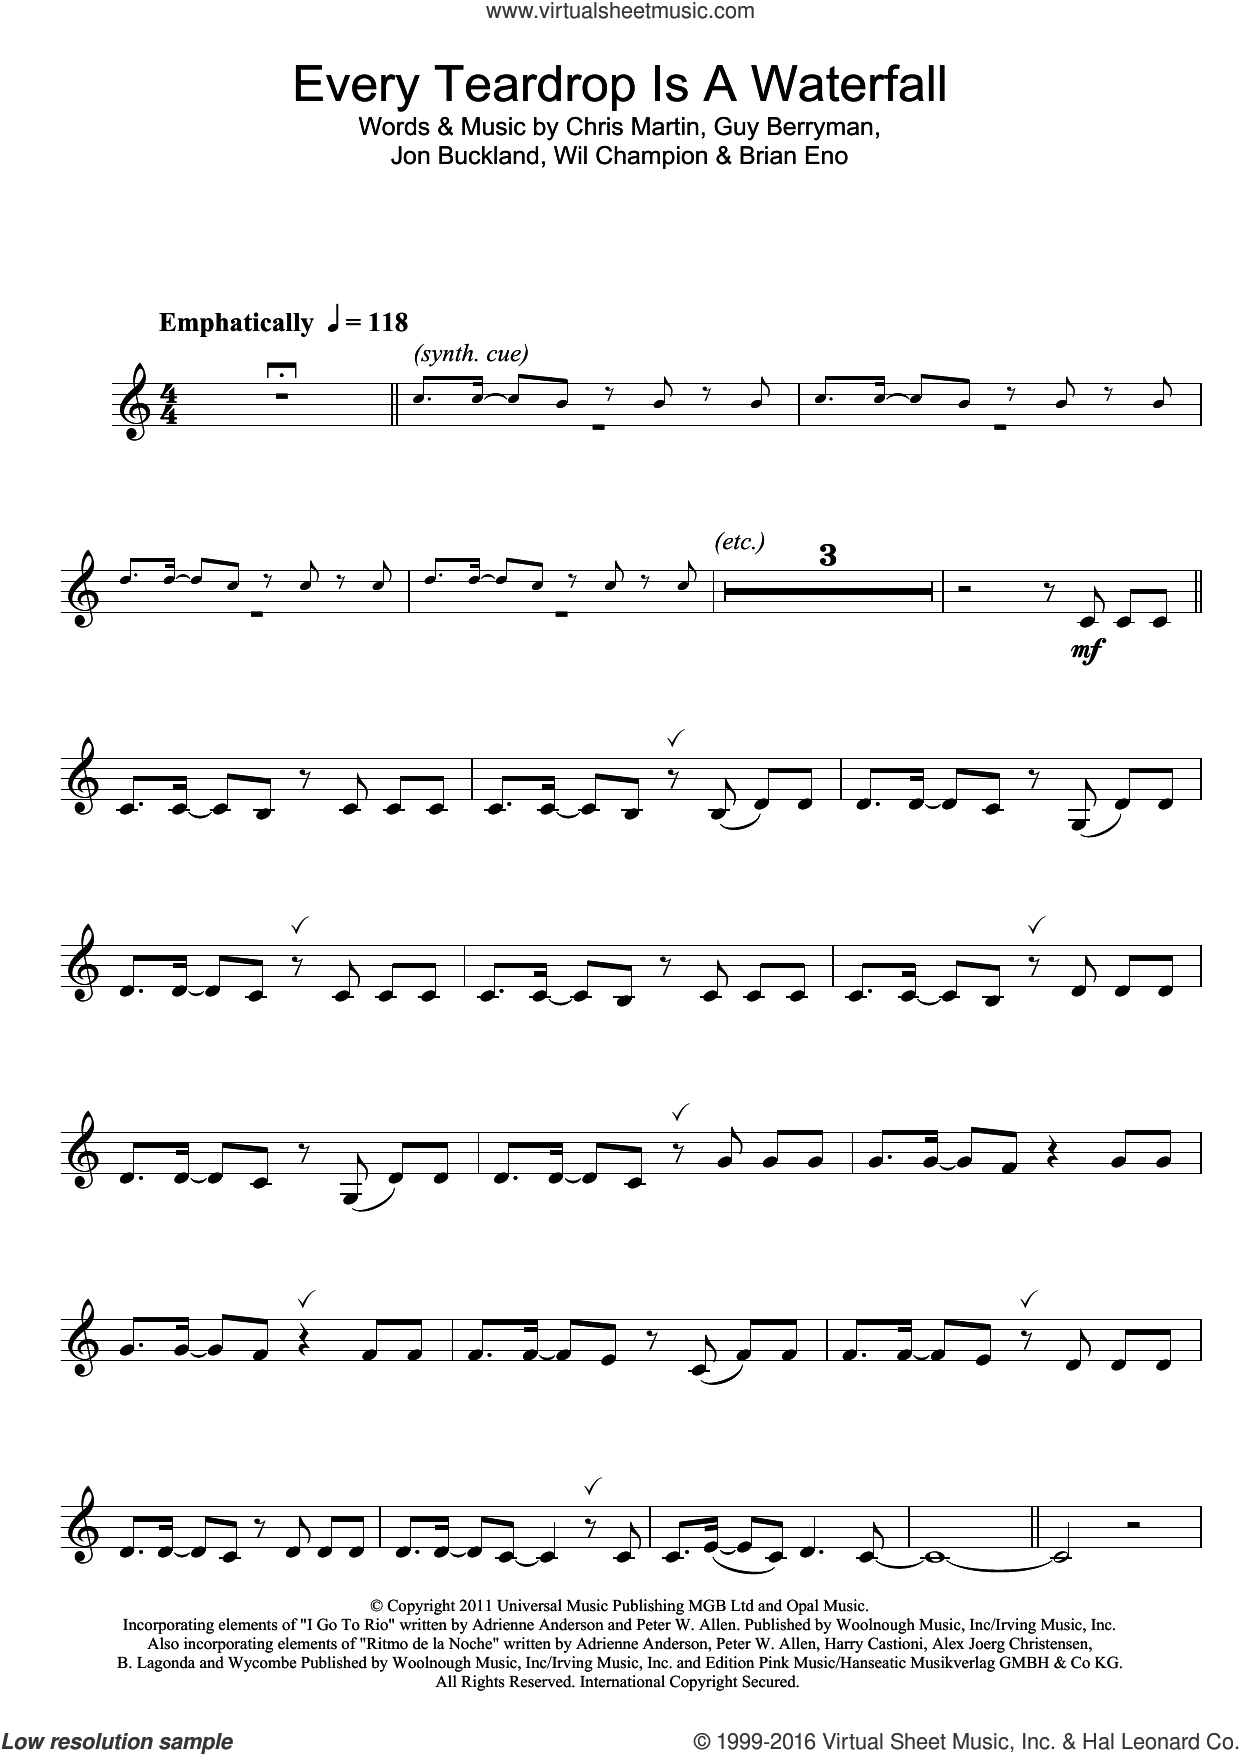 Every Teardrop Is A Waterfall sheet music for clarinet solo by Will Champion